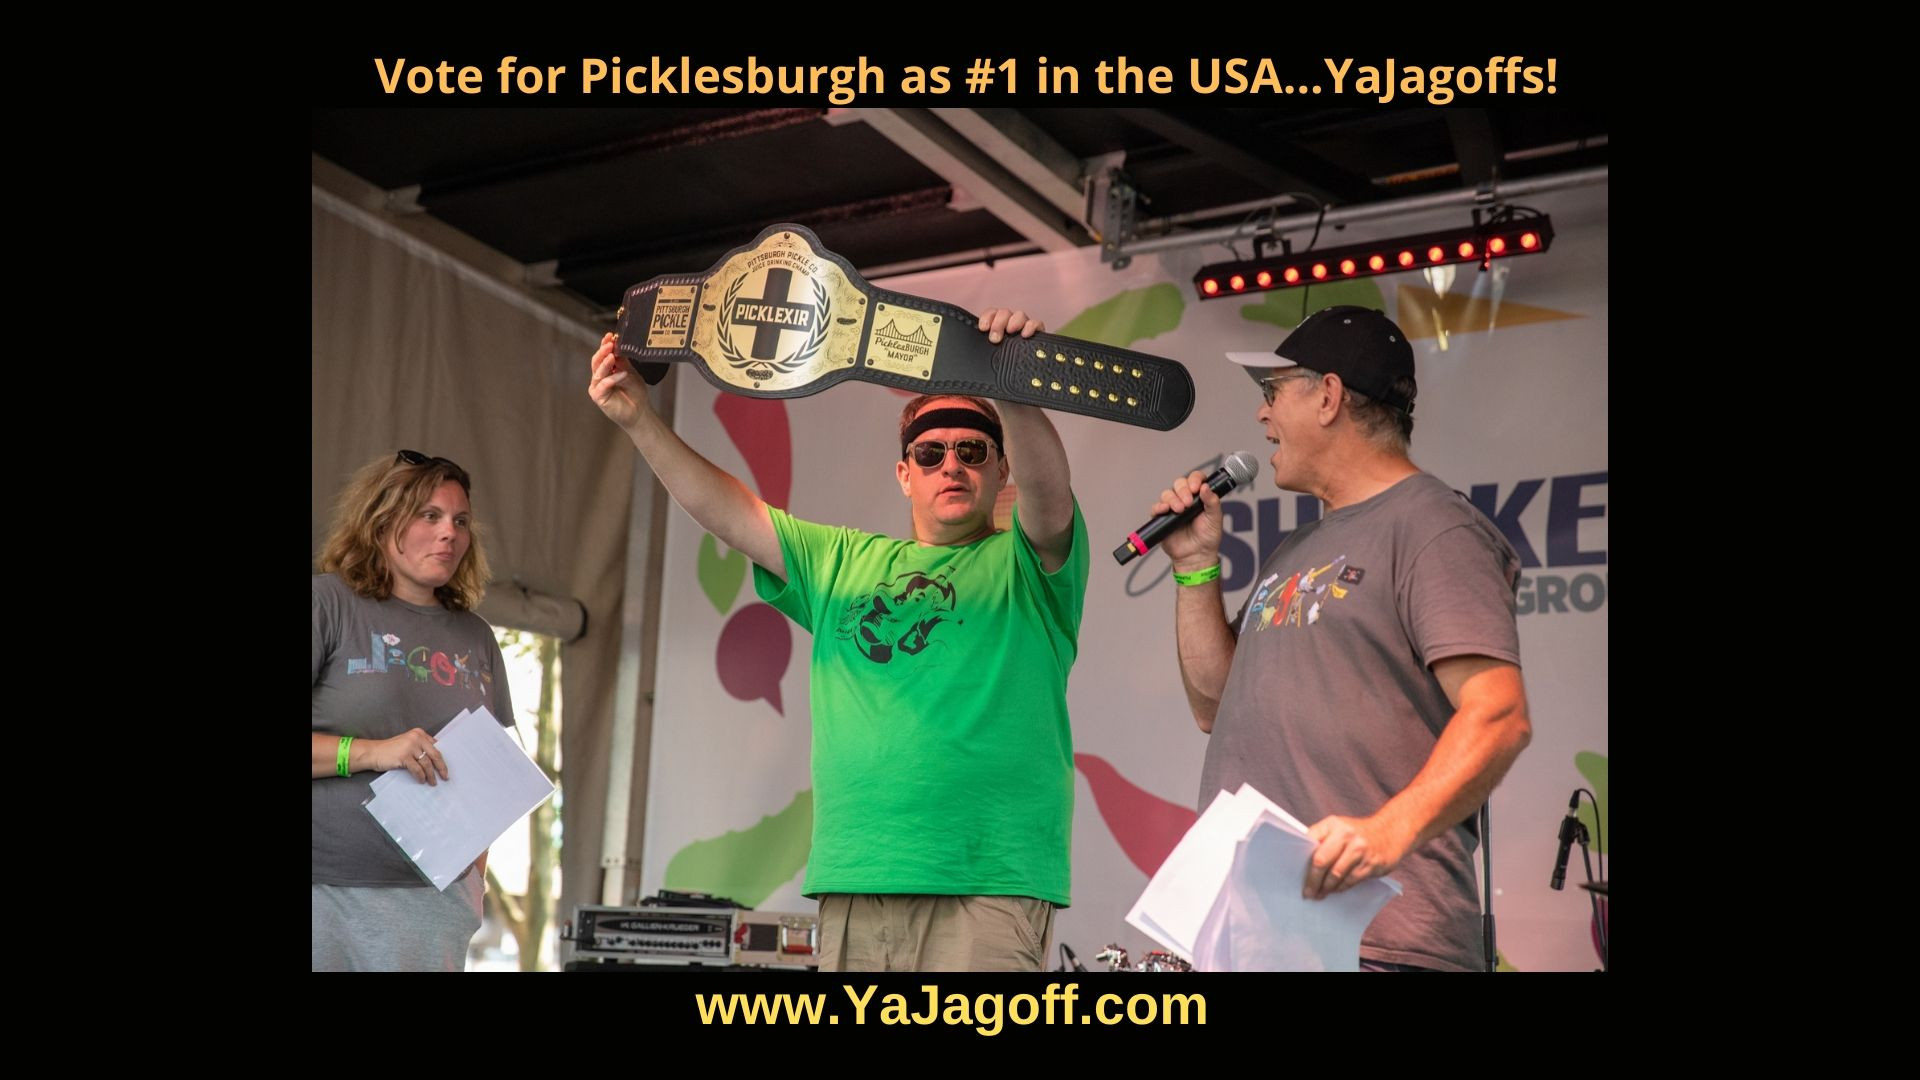 Picklesburgh Vote for USA Today